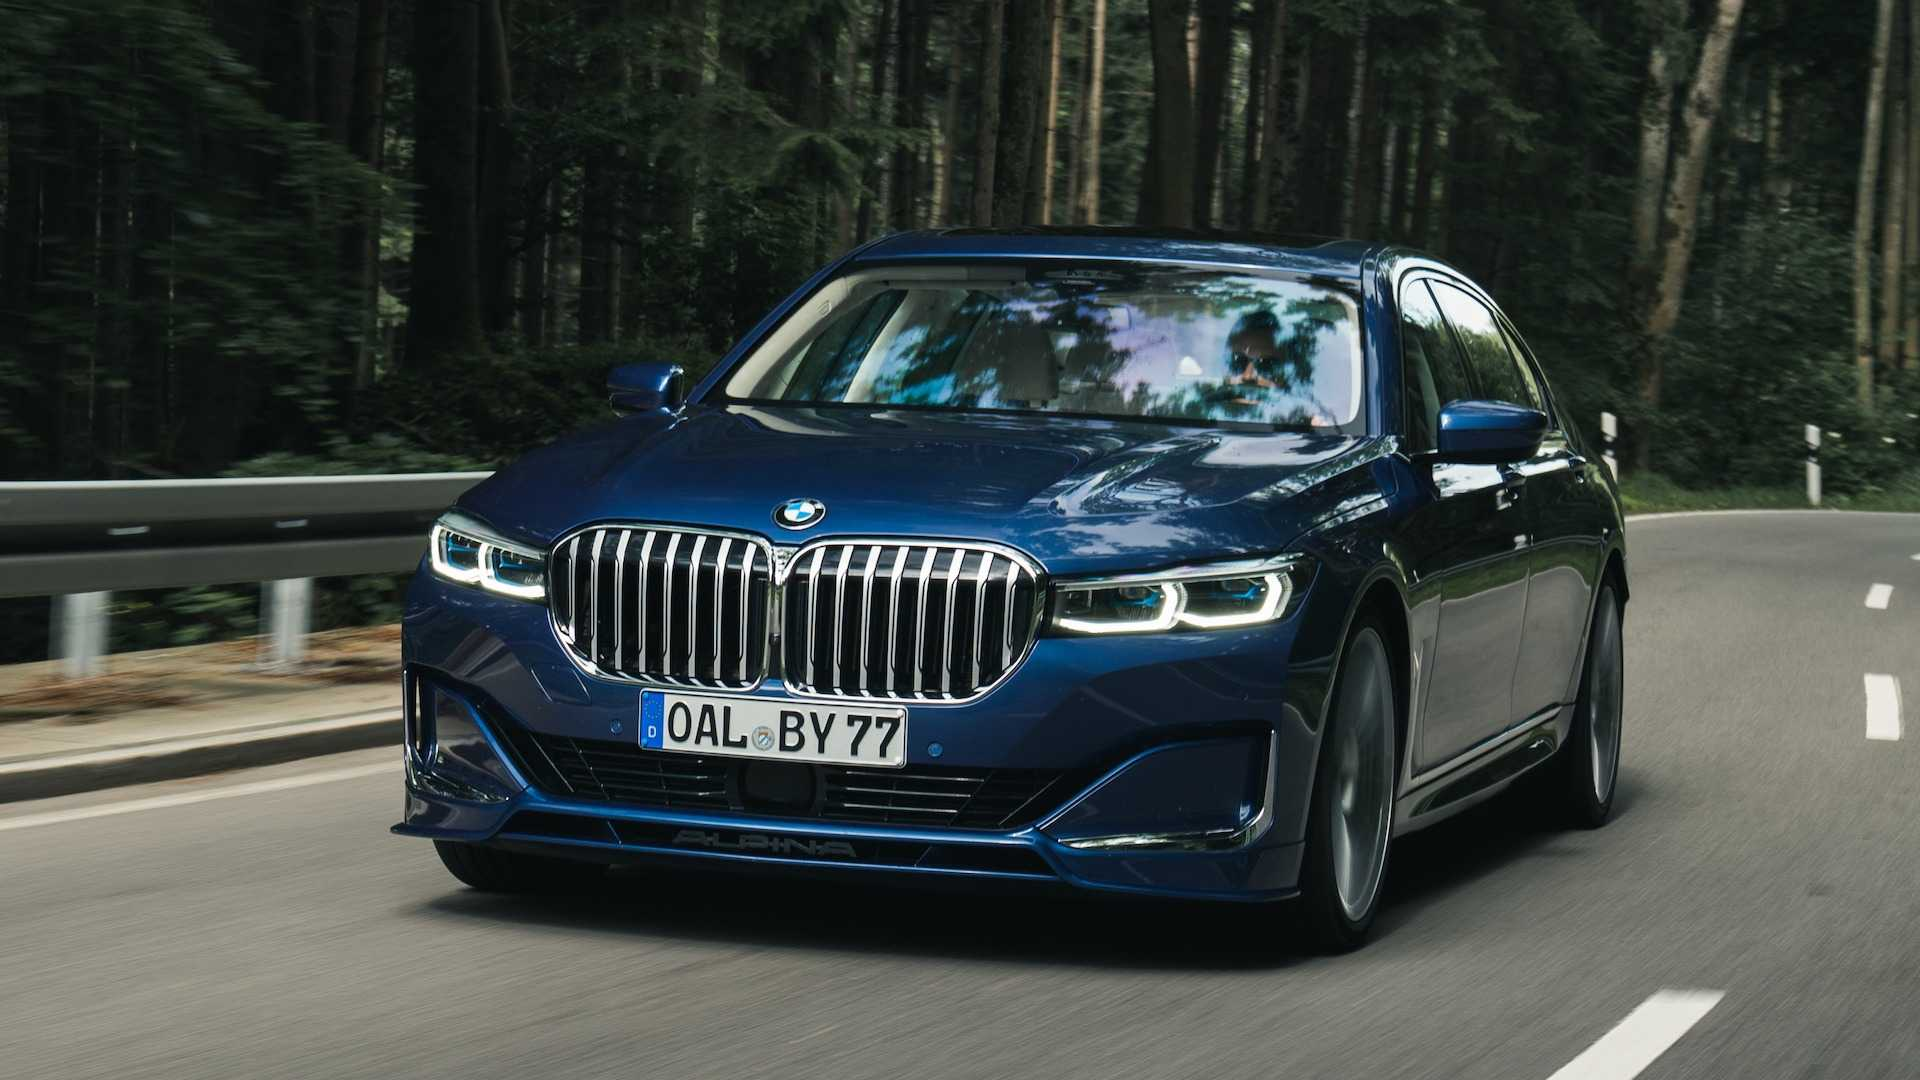 2021 Bmw Alpina B7 Xdrive - Car Wallpaper